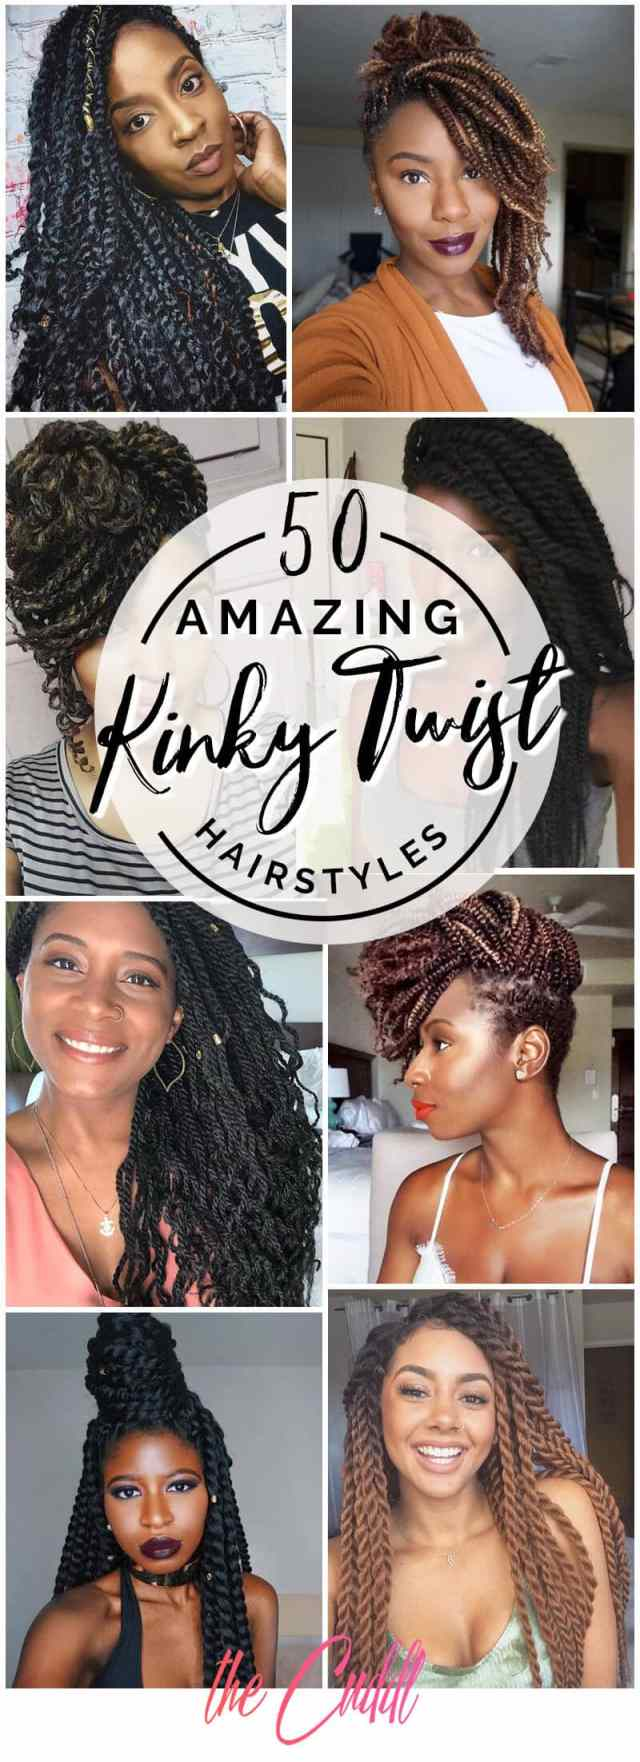 50 amazing kinky twist hairtyle ideas you can't live without